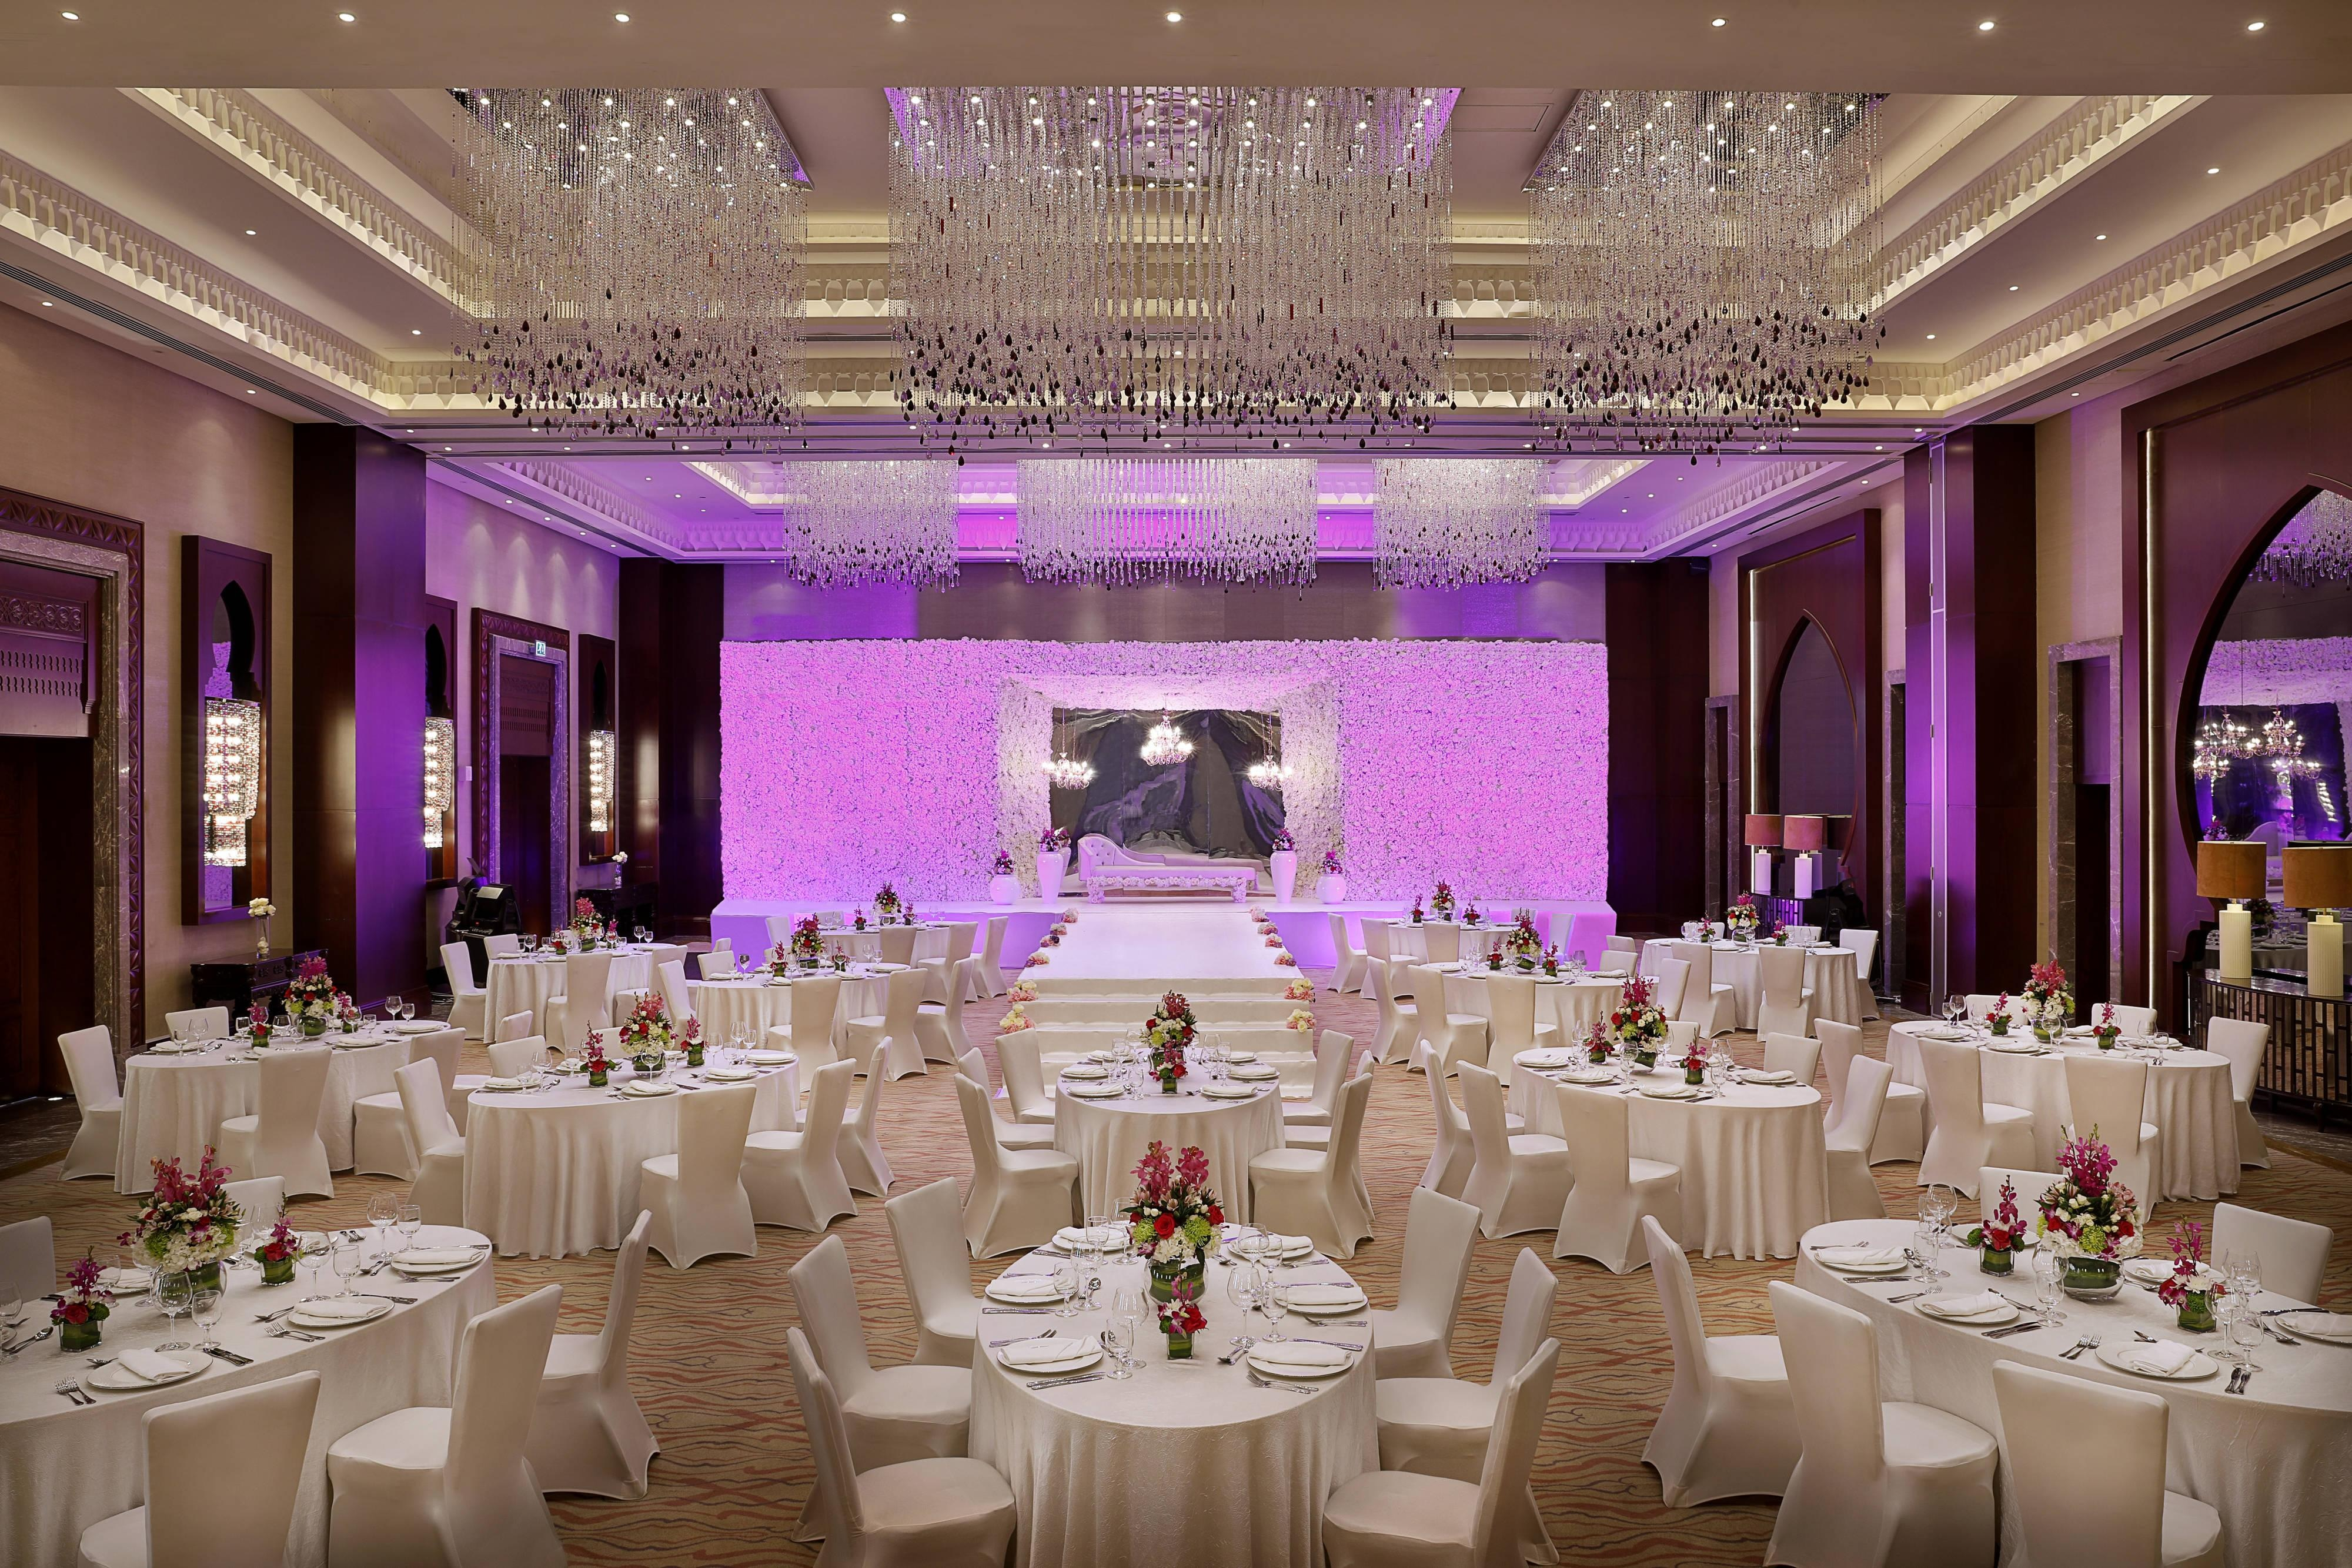 Medar Ballroom Wedding Reception